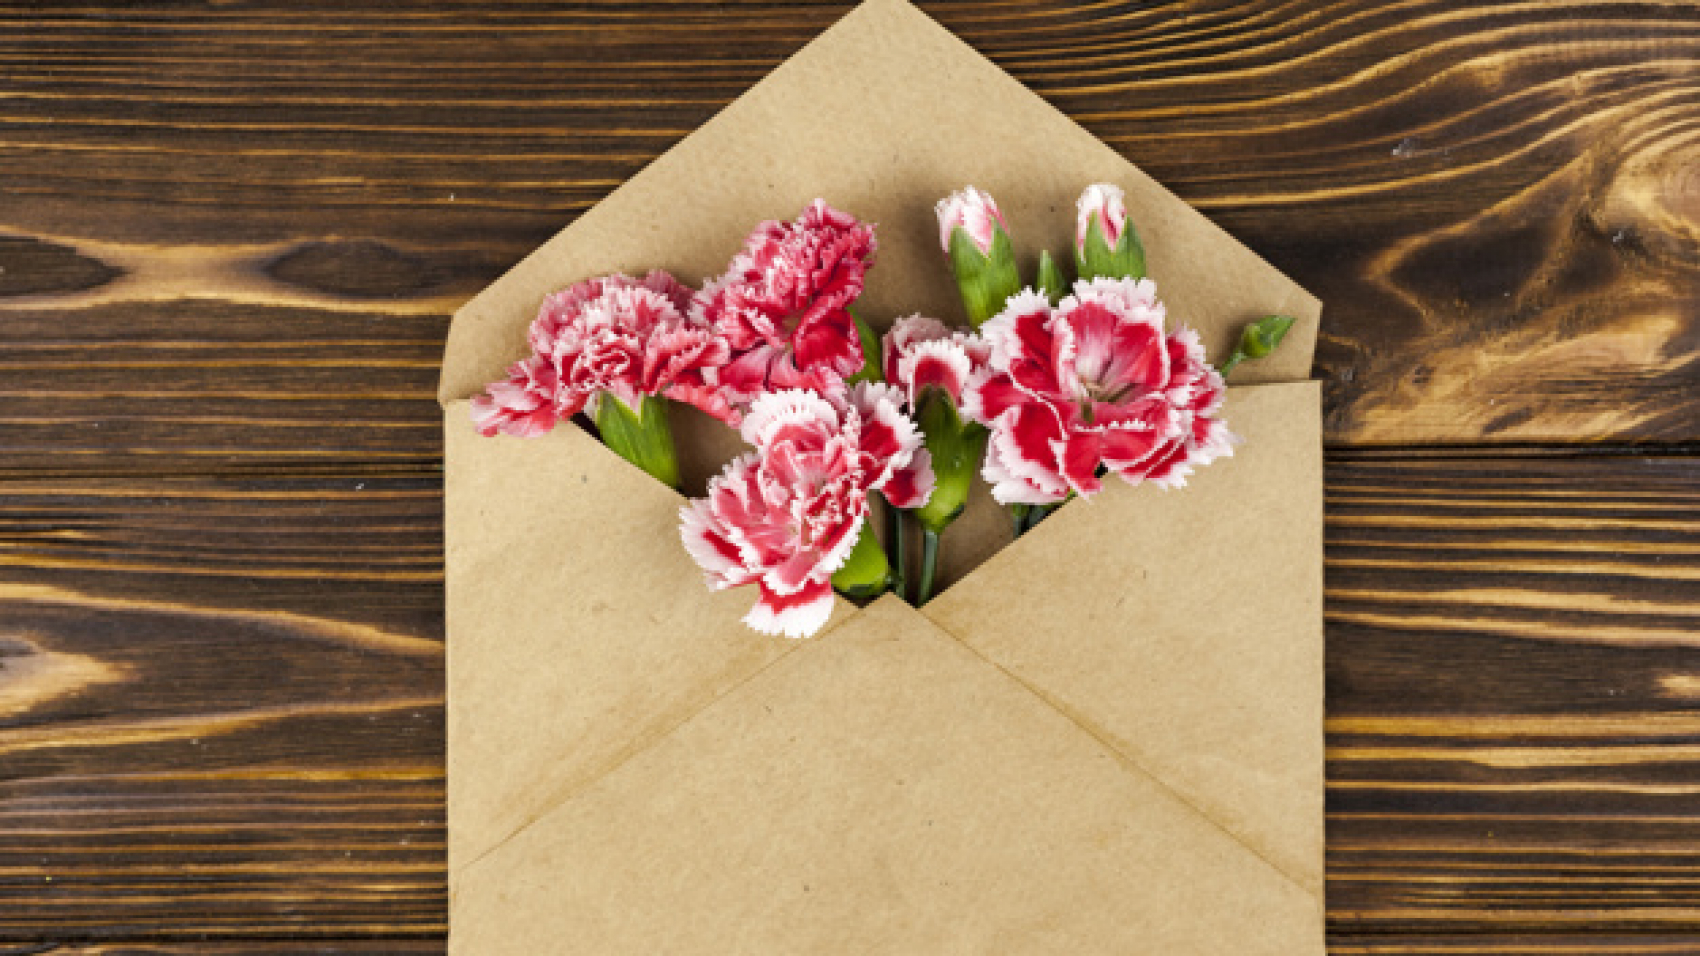 brown-envelope-with-red-carnation-flowers-over-wooden-desk_23-2148058567